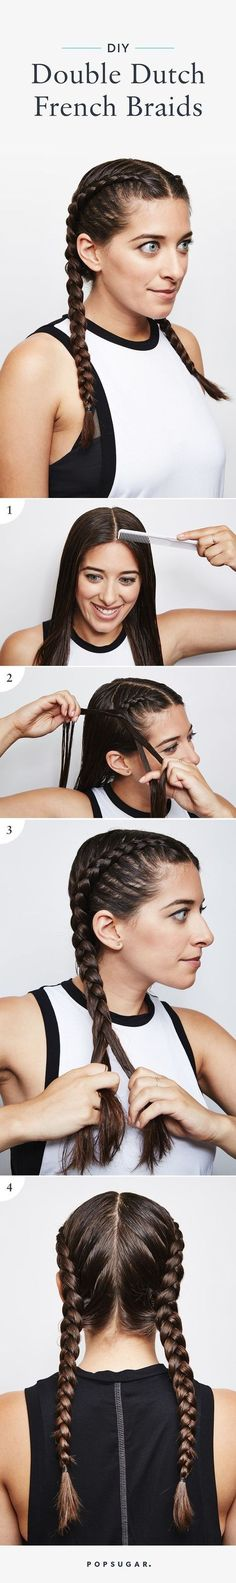 Double French Braids for your next gym visit.